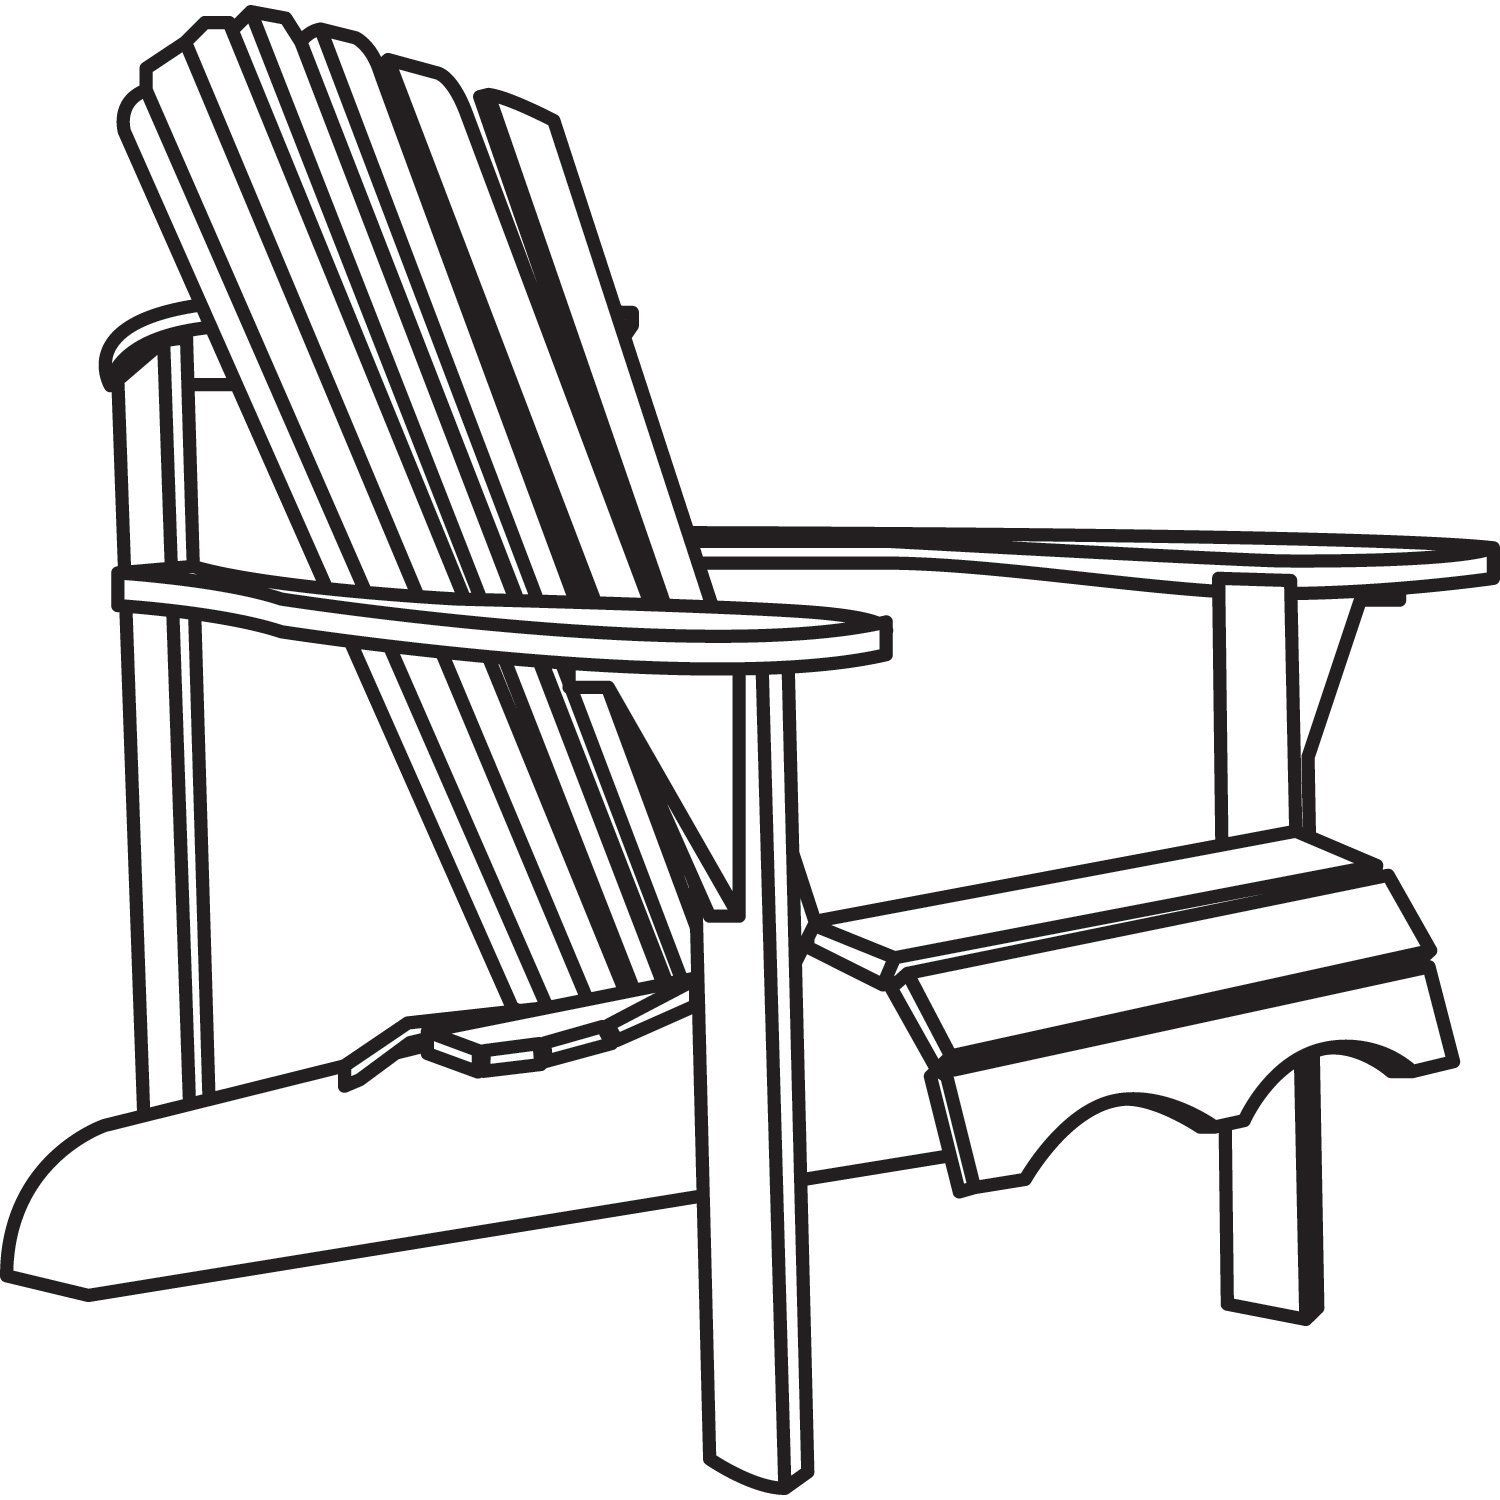 Classic Accessories Veranda Adirondack Chair Cover Waterproof New ... clip freeuse download